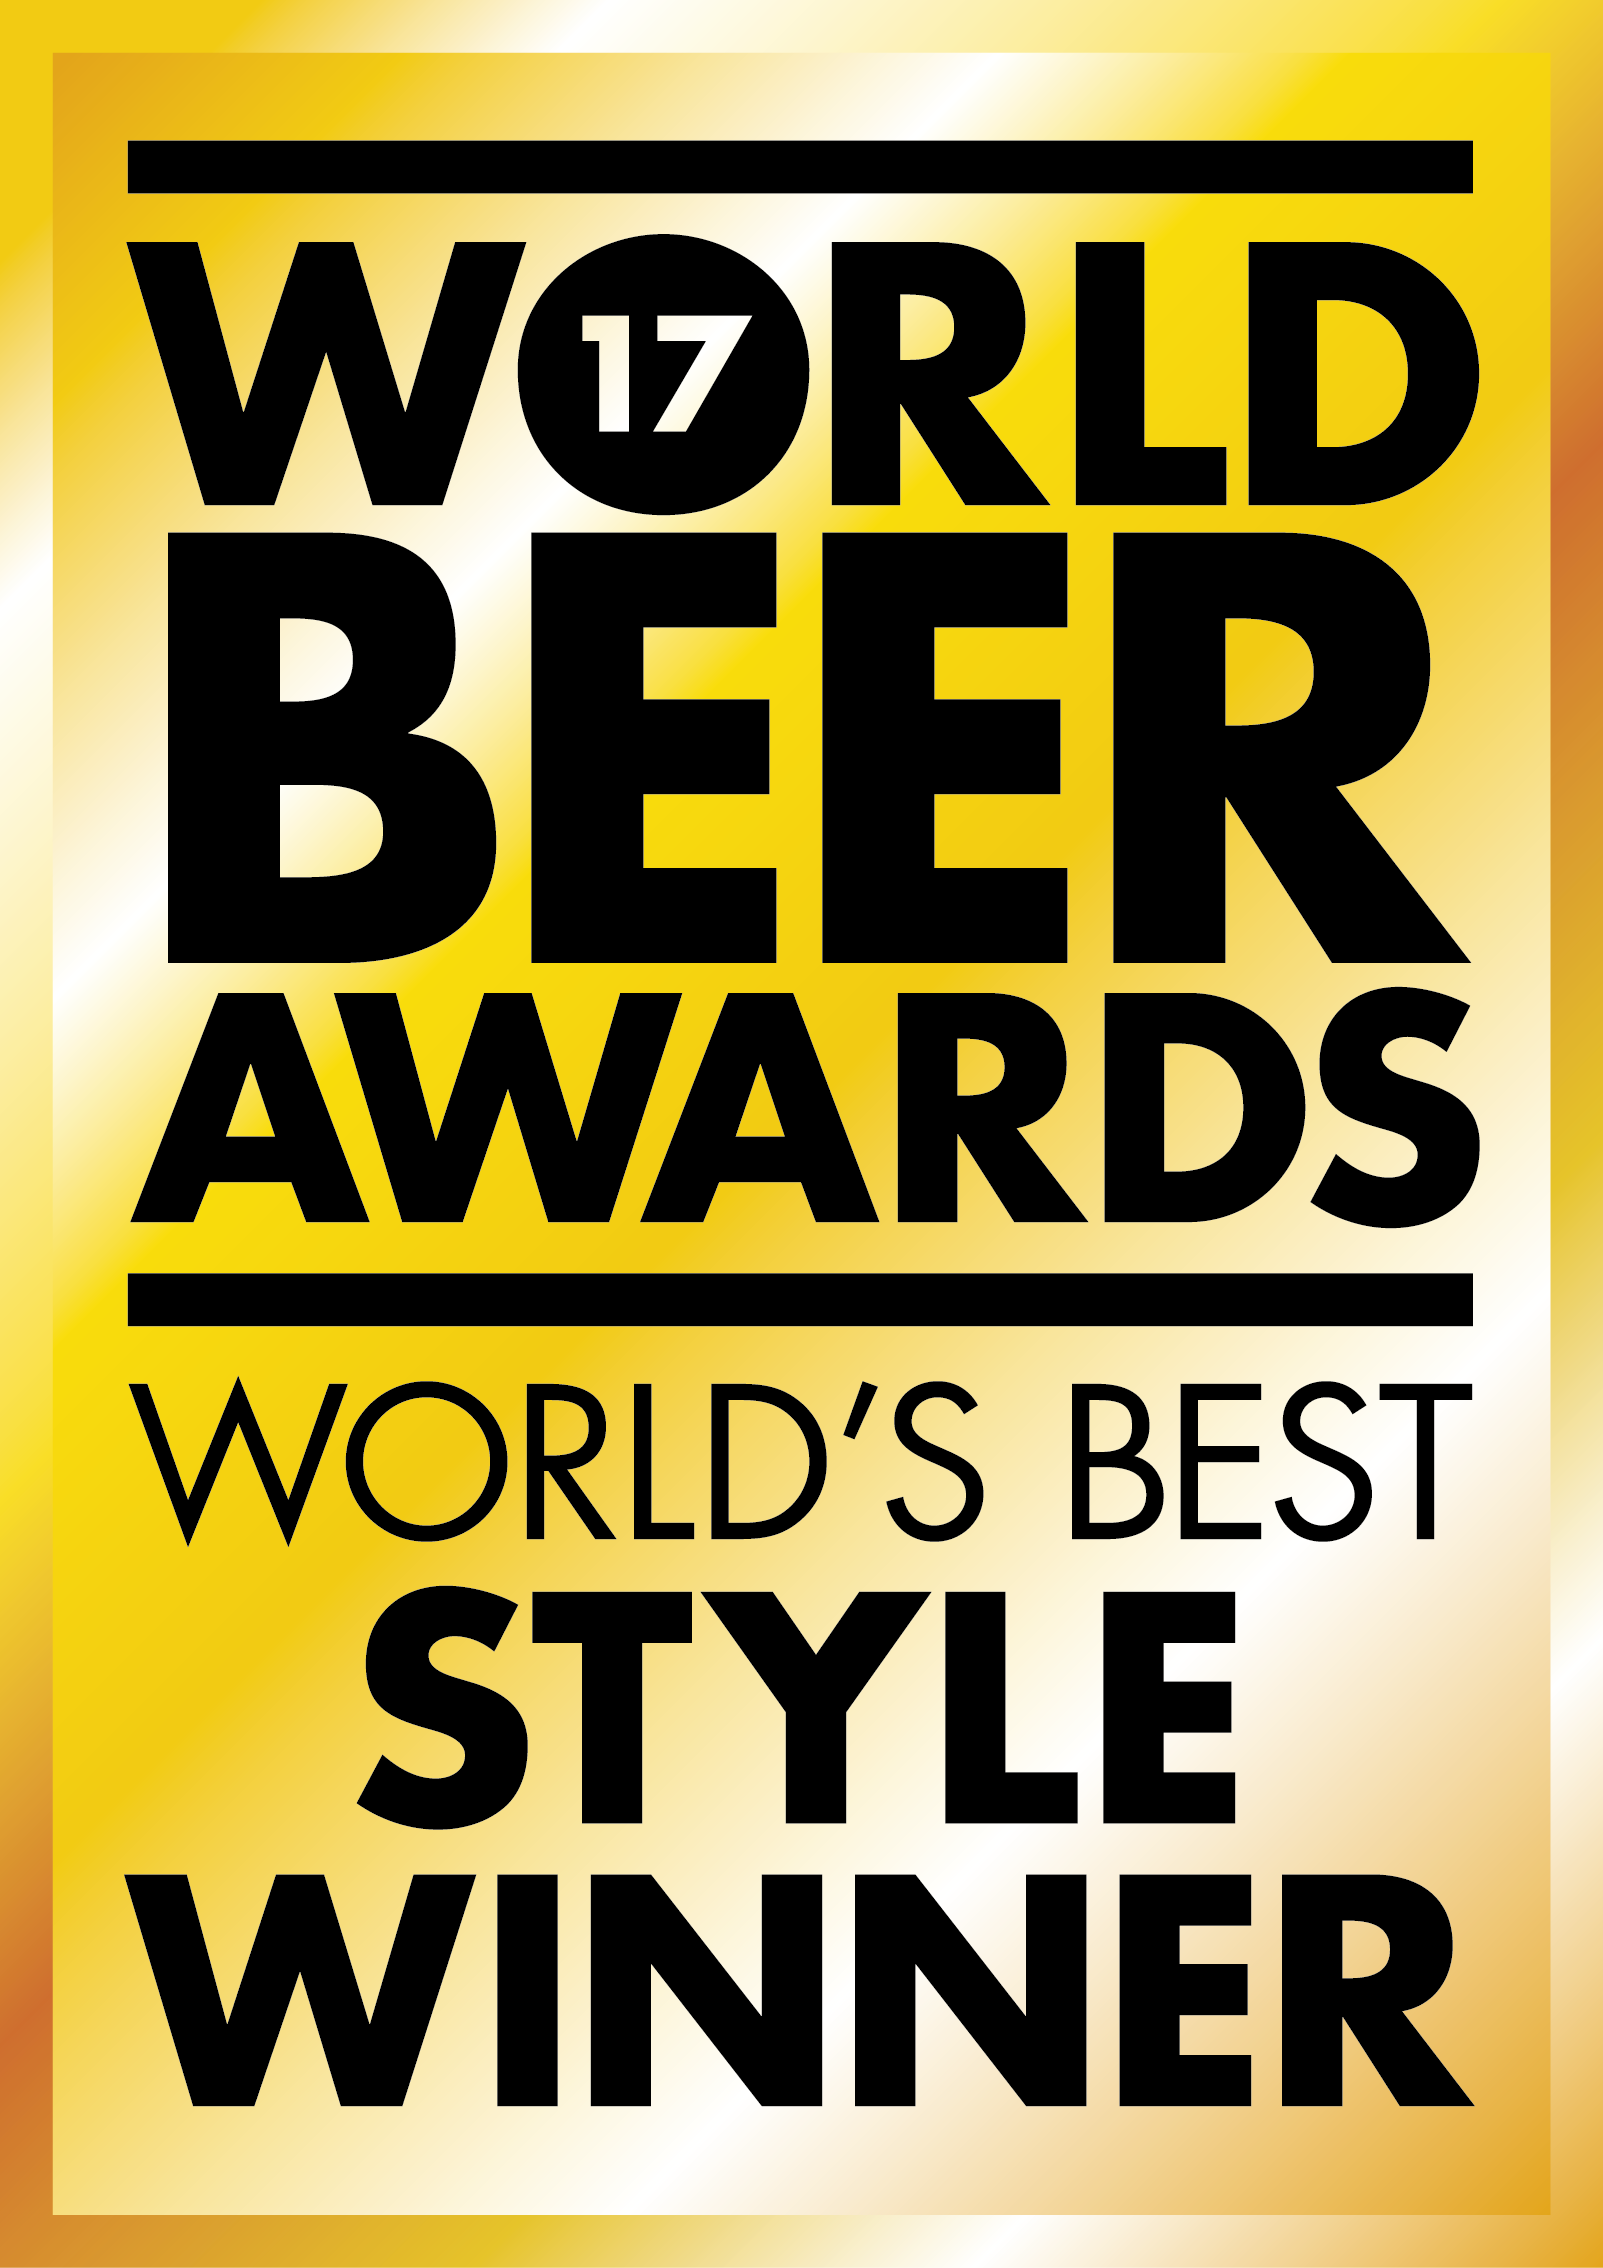 Résultats du World Beer Awards 2017